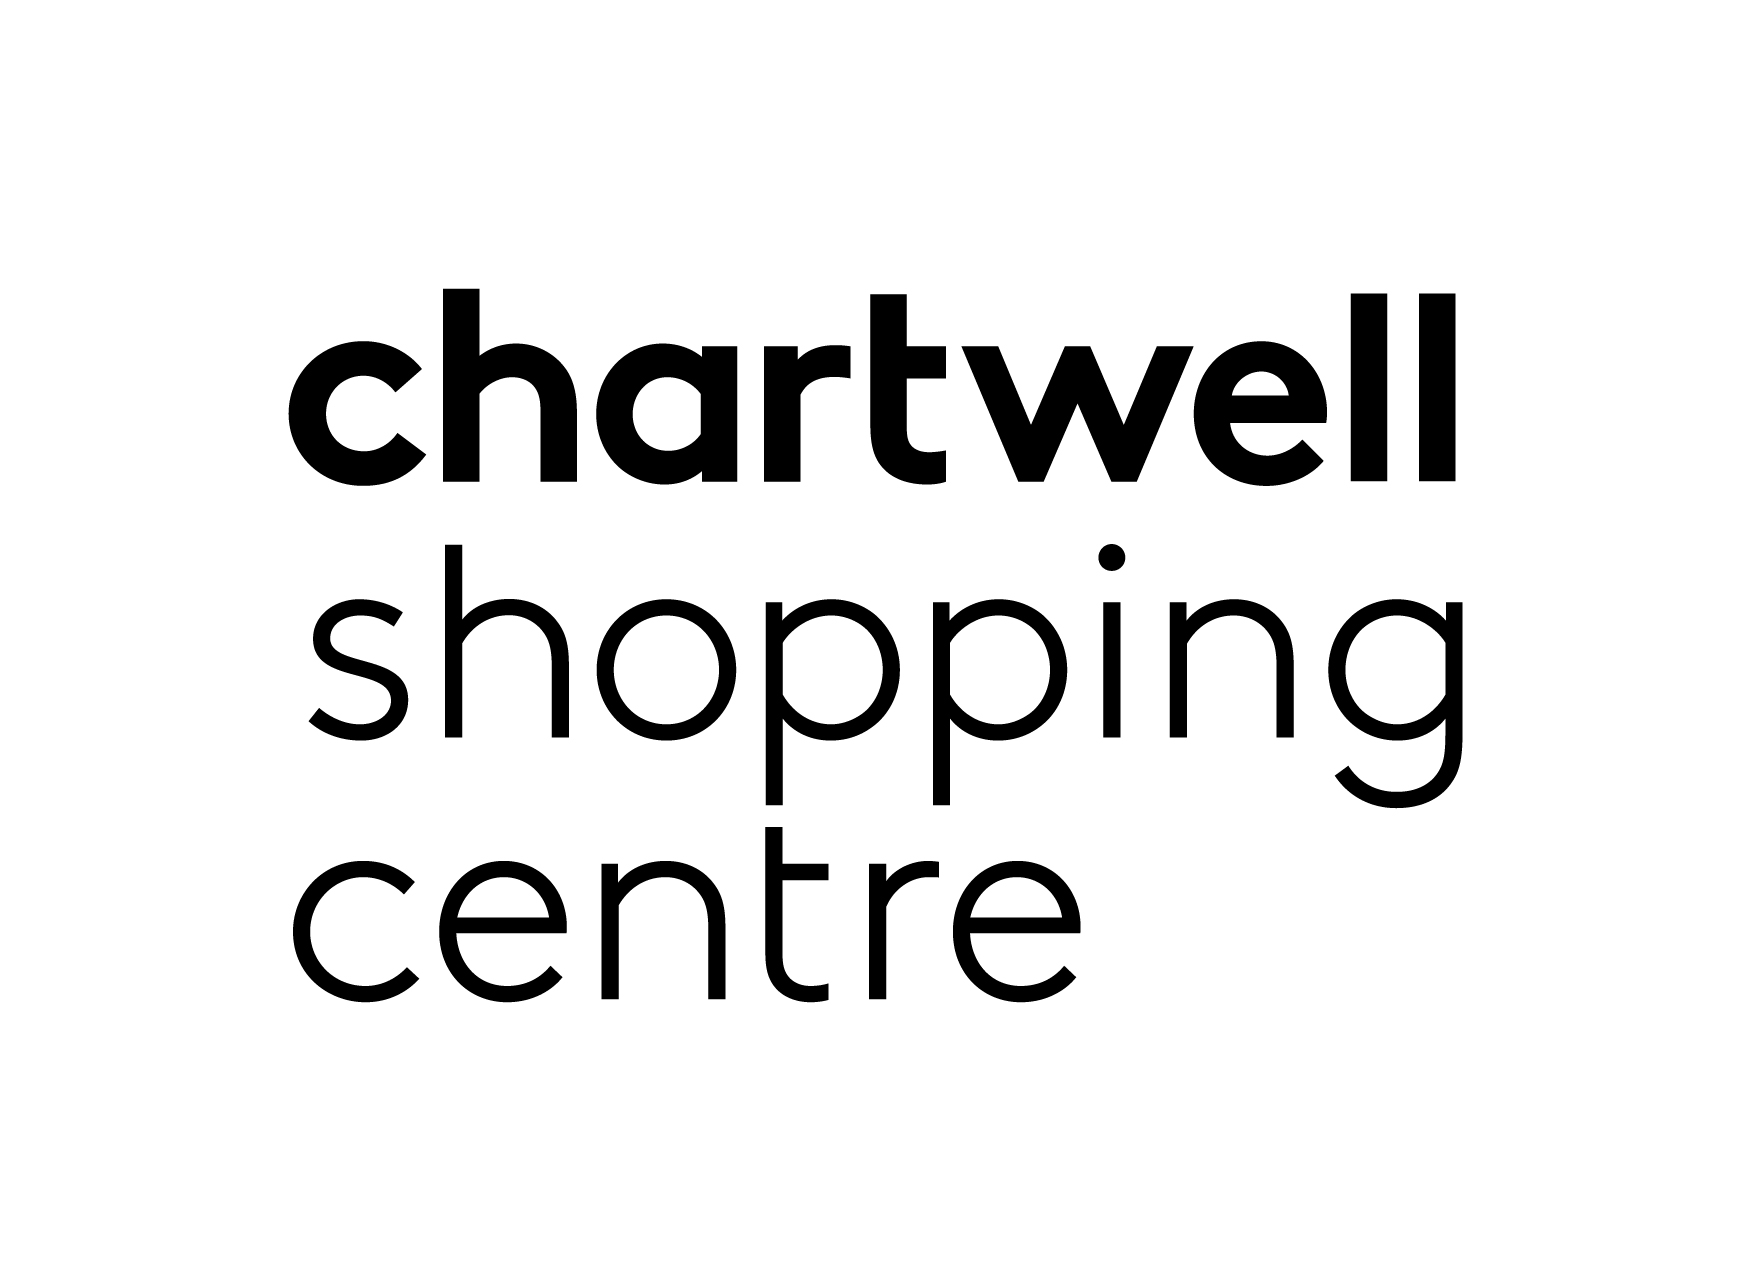 Chartwell Shopping Centre Stacked_Left.jpg